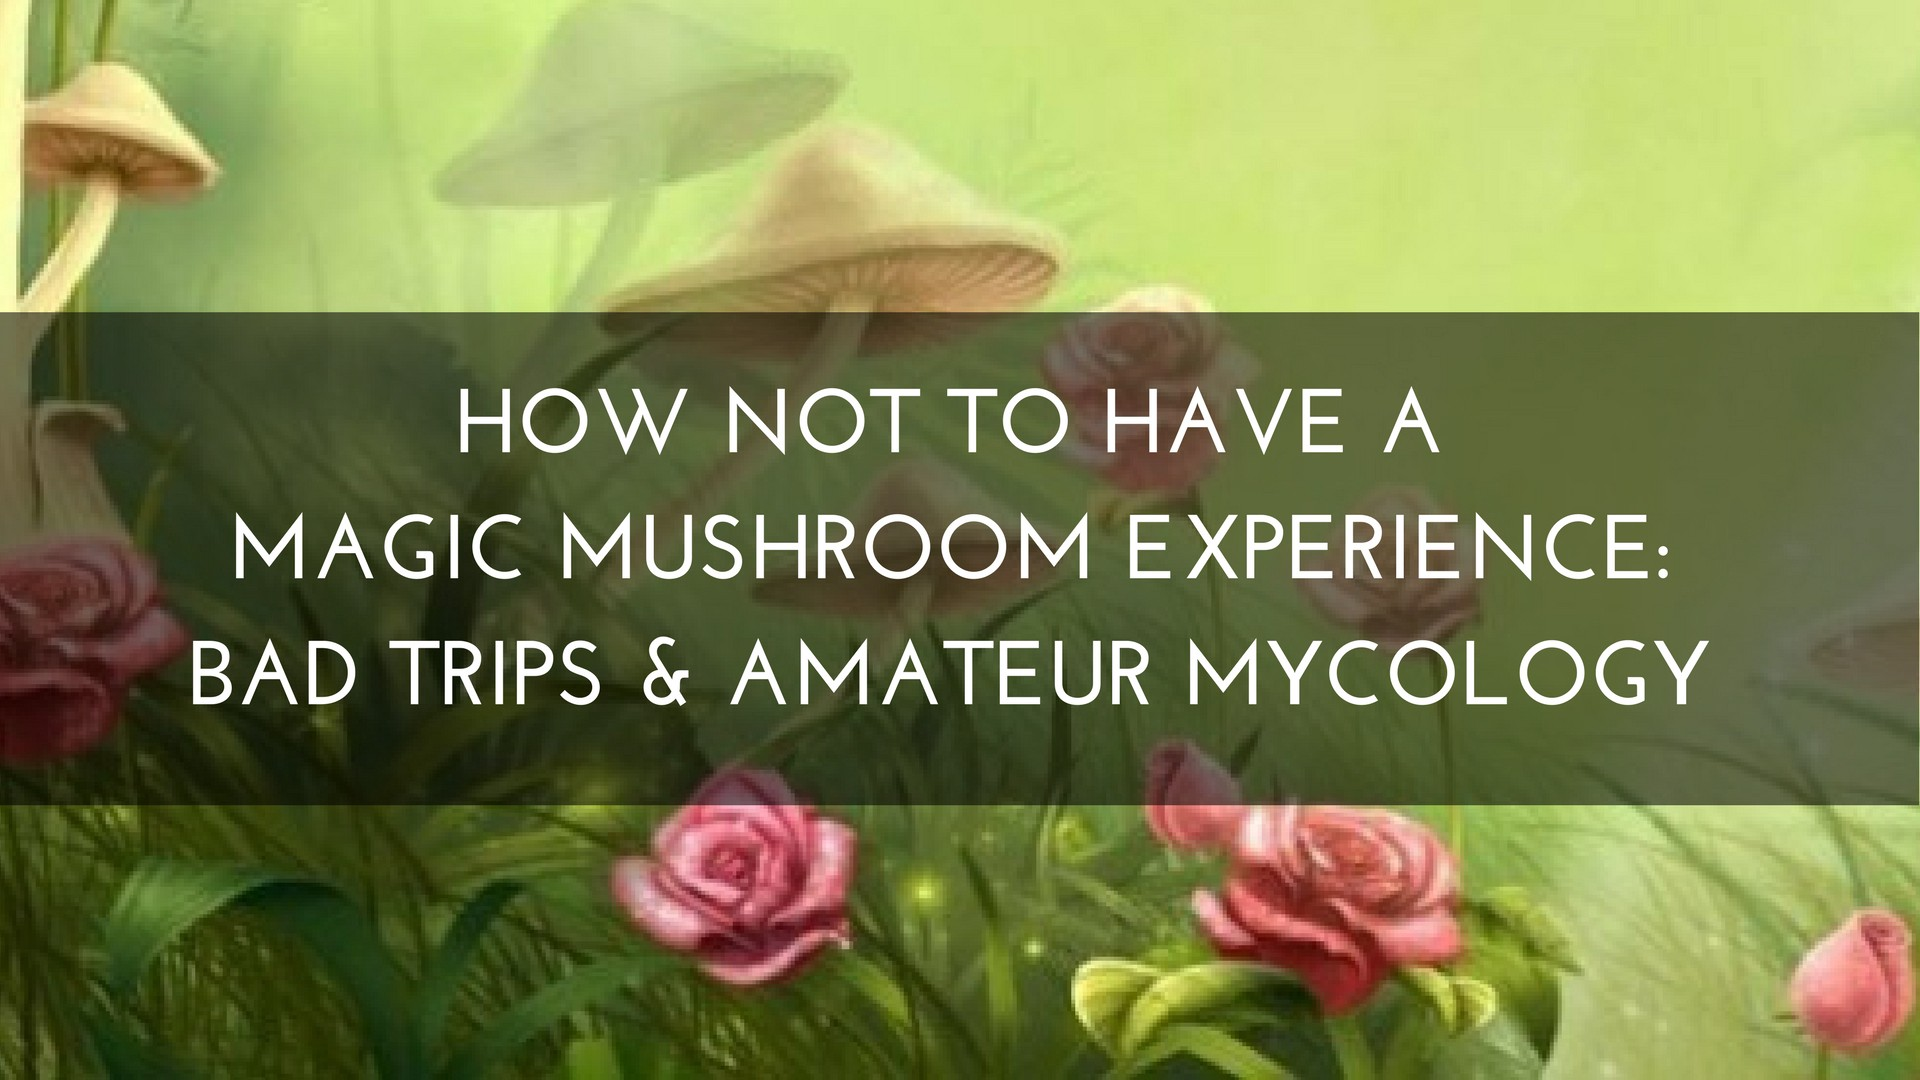 How NOT to Have a Magic Mushroom Experience: Bad Trips